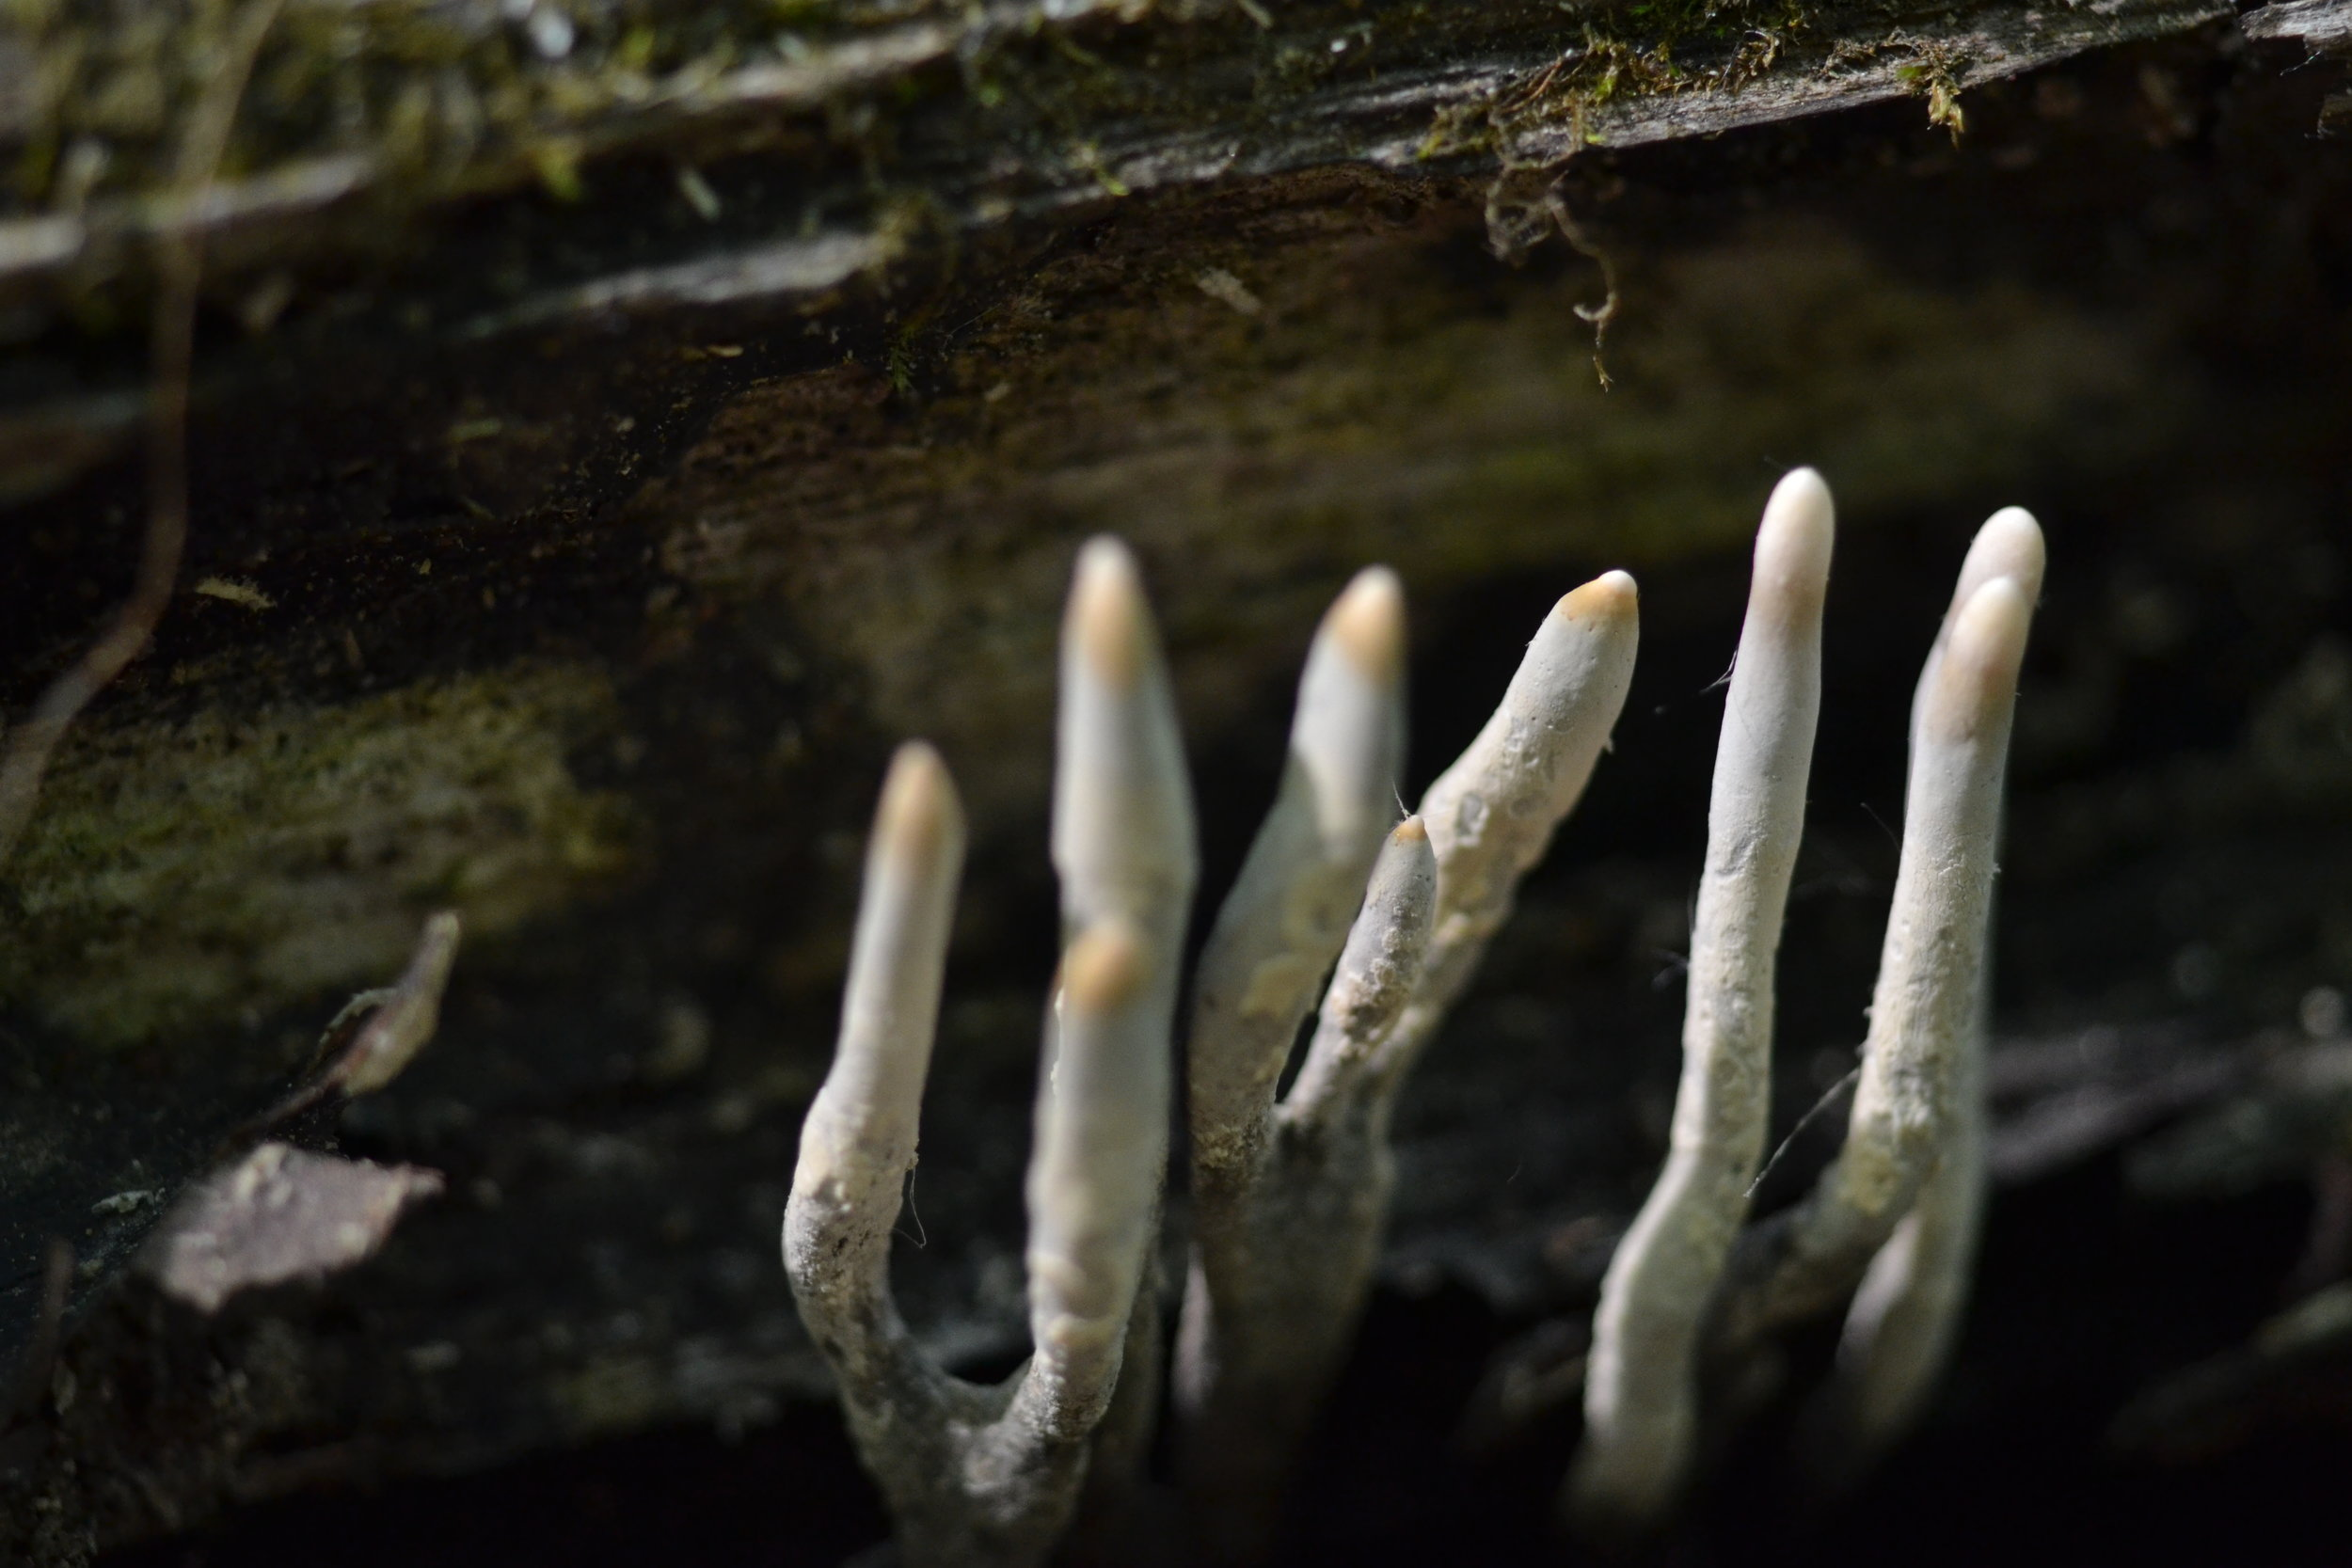 Species in the genus  Xylaria  cause white rot